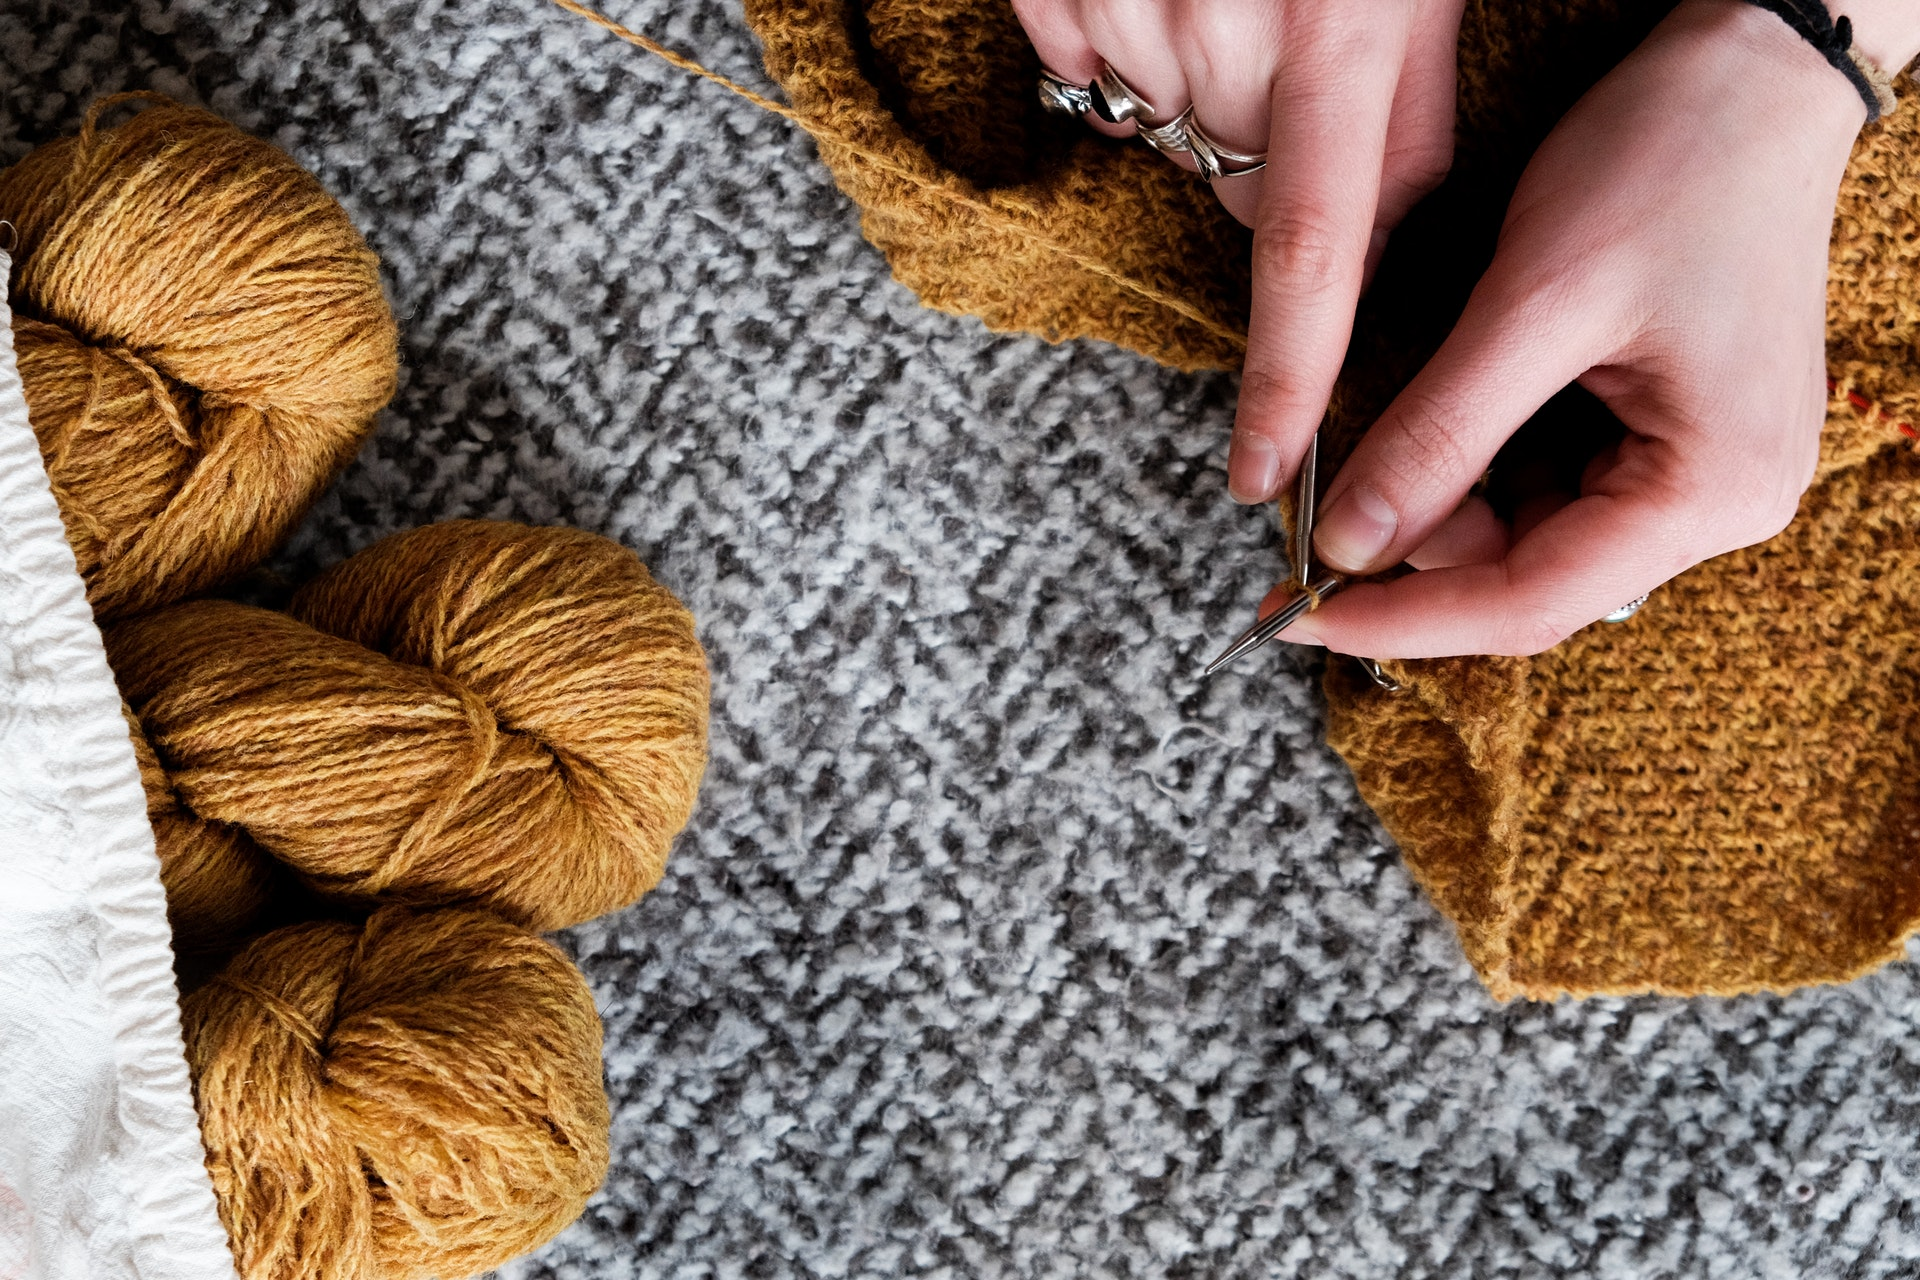 We Are Knitters: passione per l'uncinetto